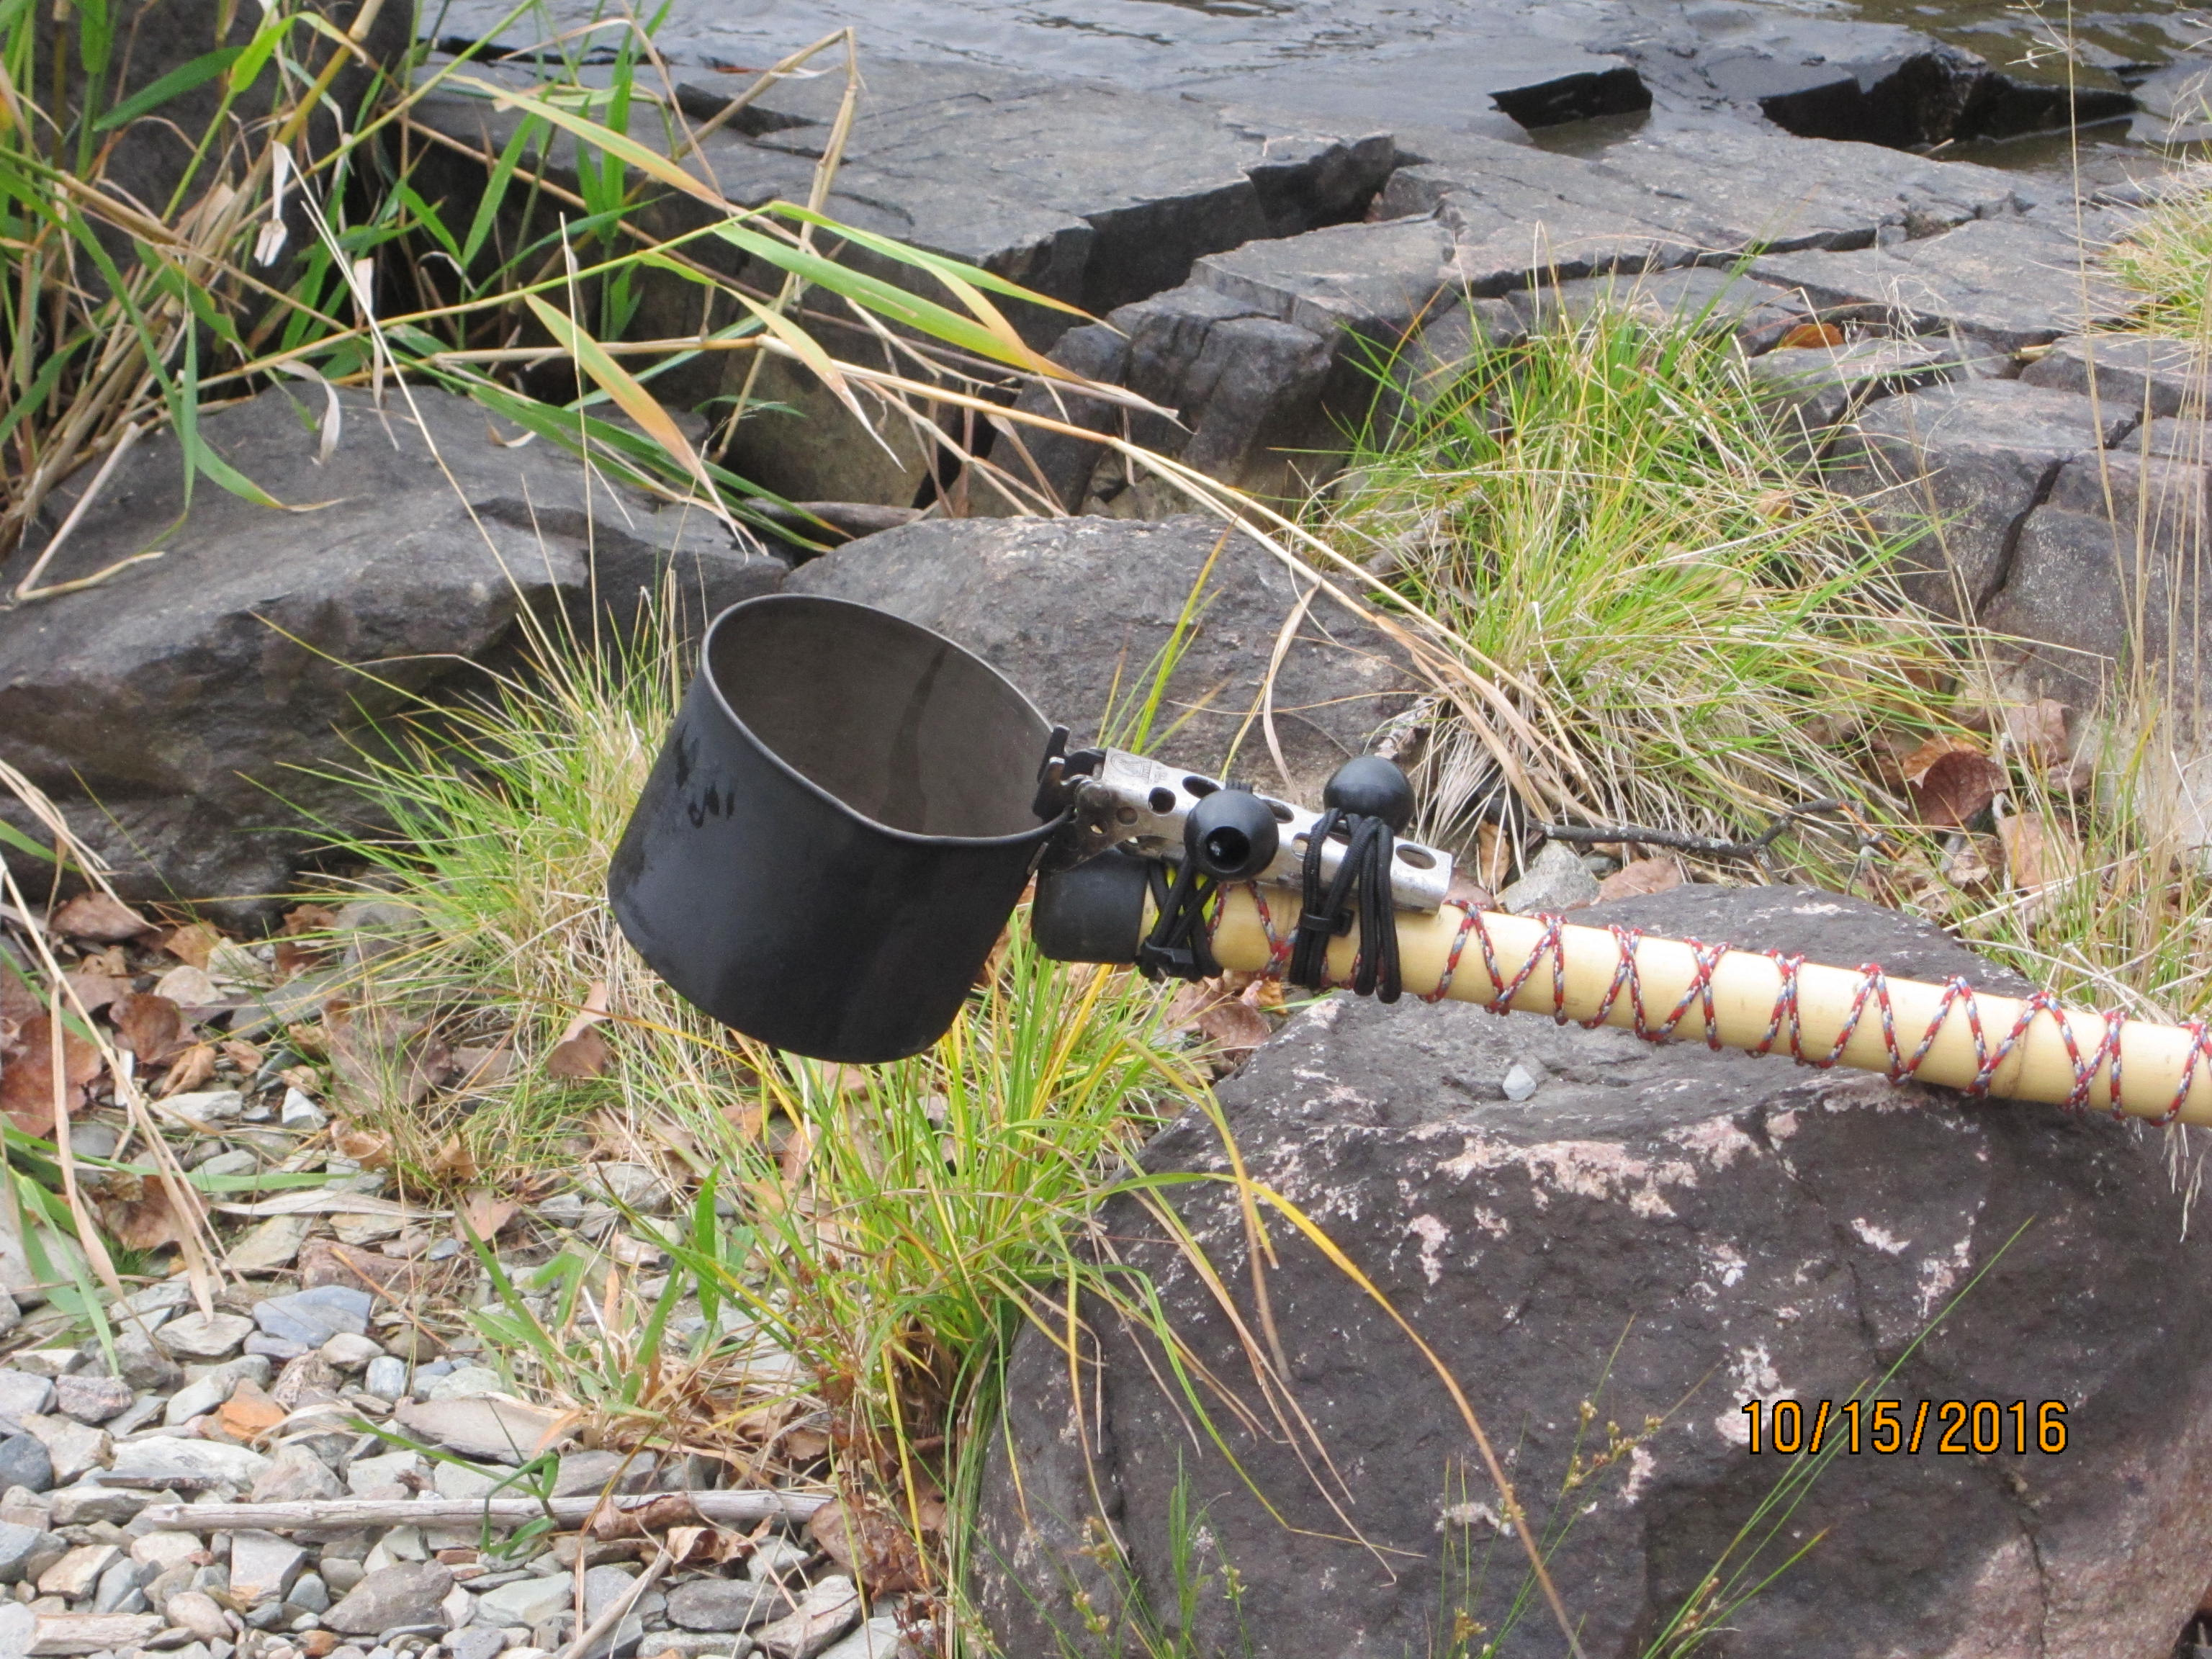 Using a Littlbug bamboo hiking stick to scoop water.